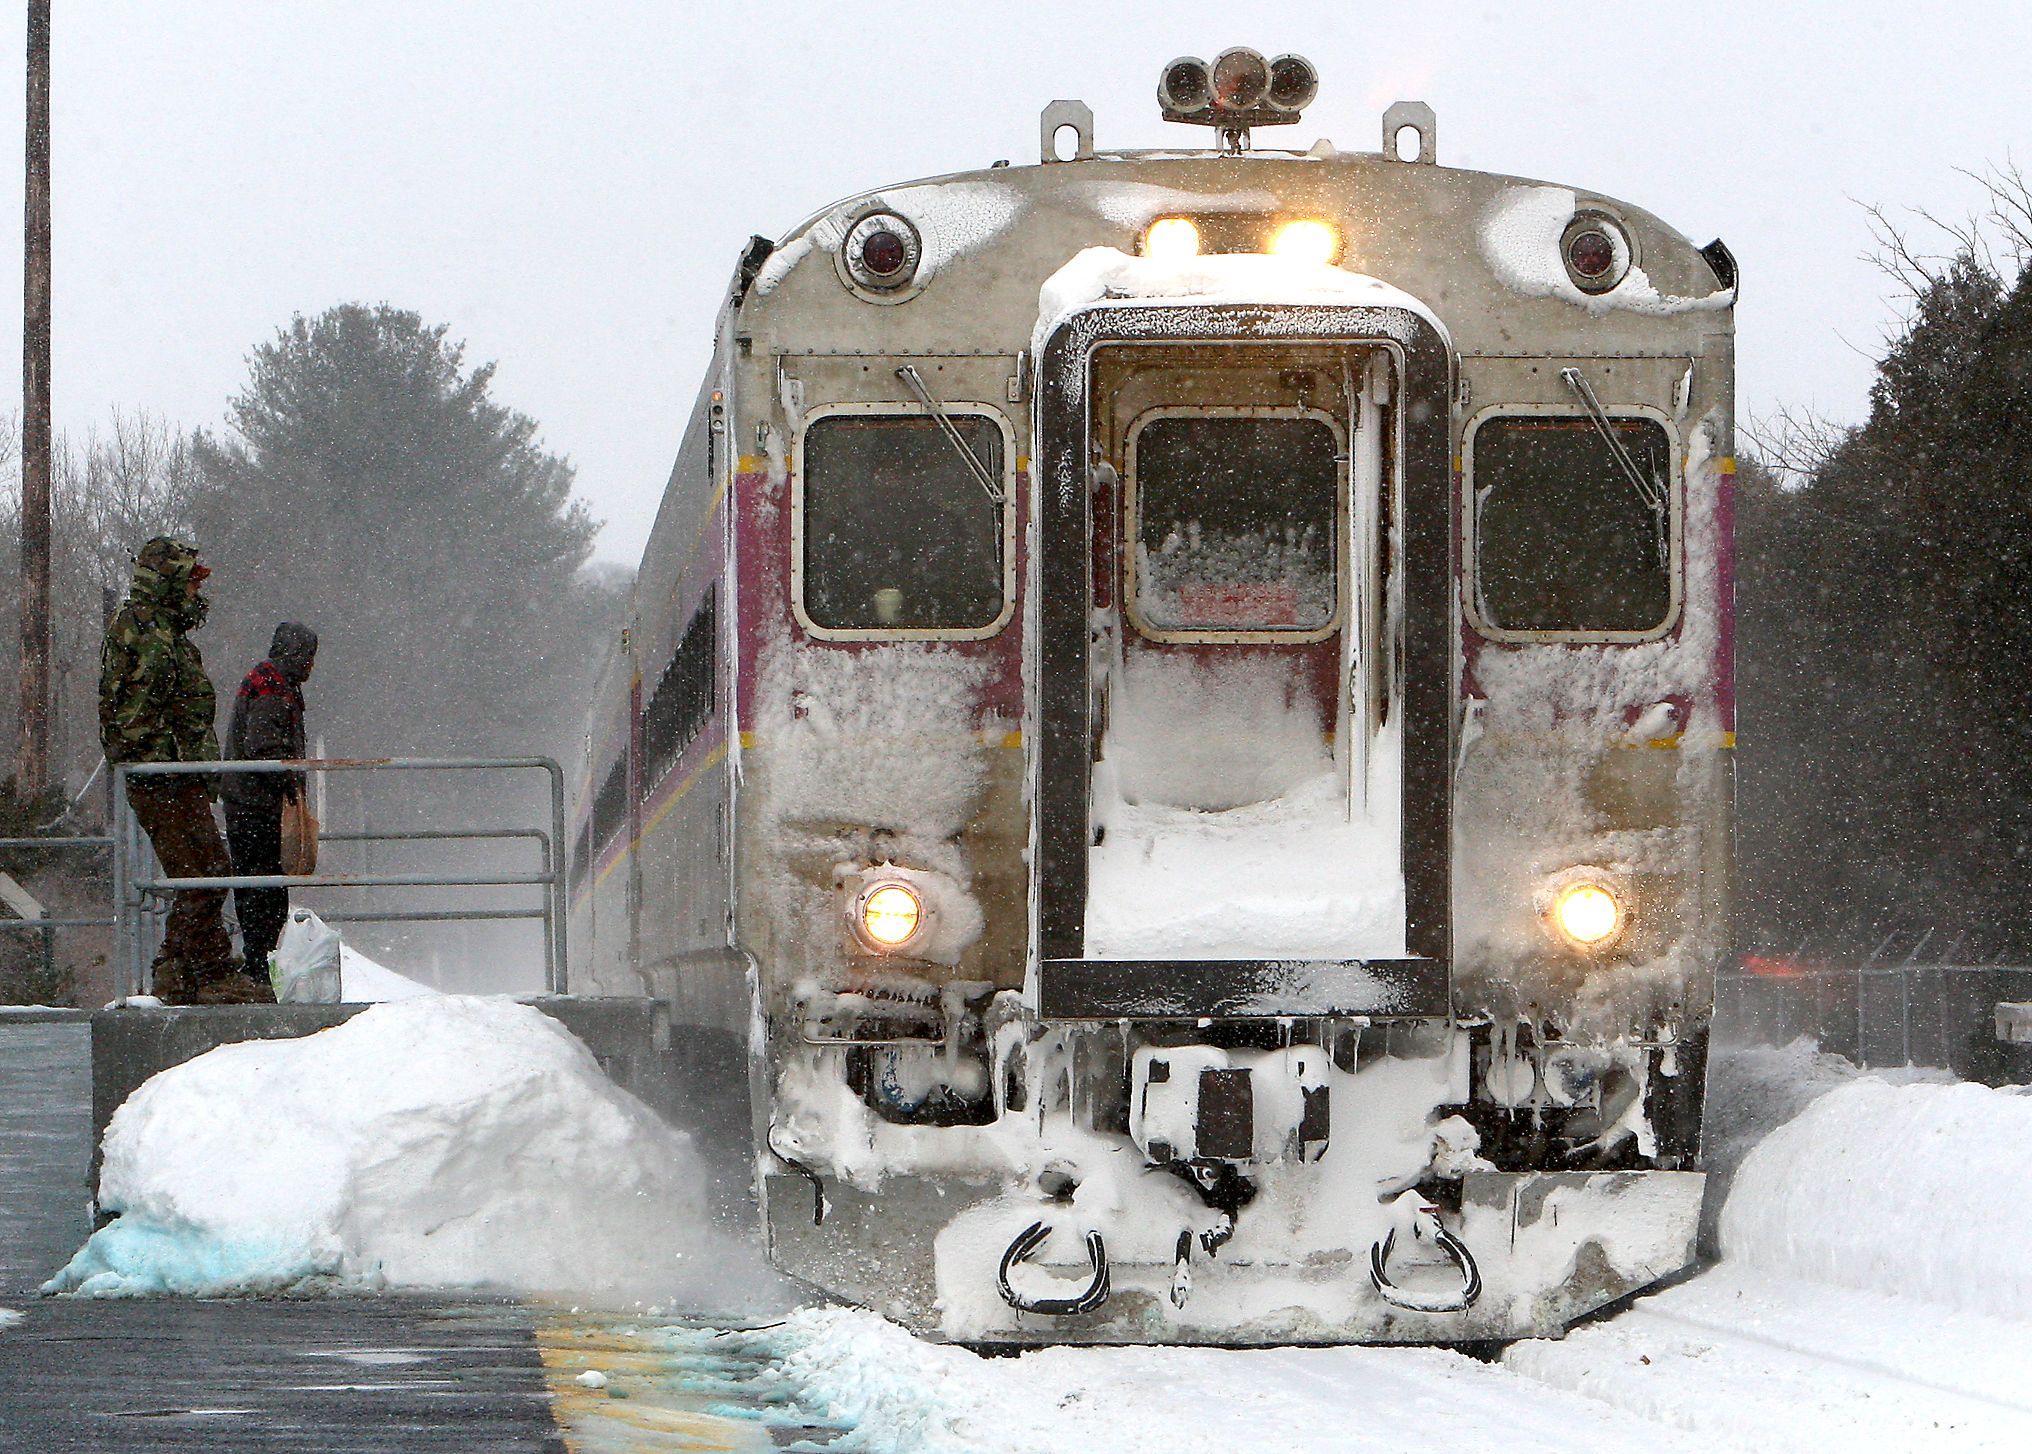 Passengers wait as MBTA commuter rail train pulls into the North Beverly station in Beverly, Mass. Feb. 17, 2015, running on a special storm schedule because of the snow.